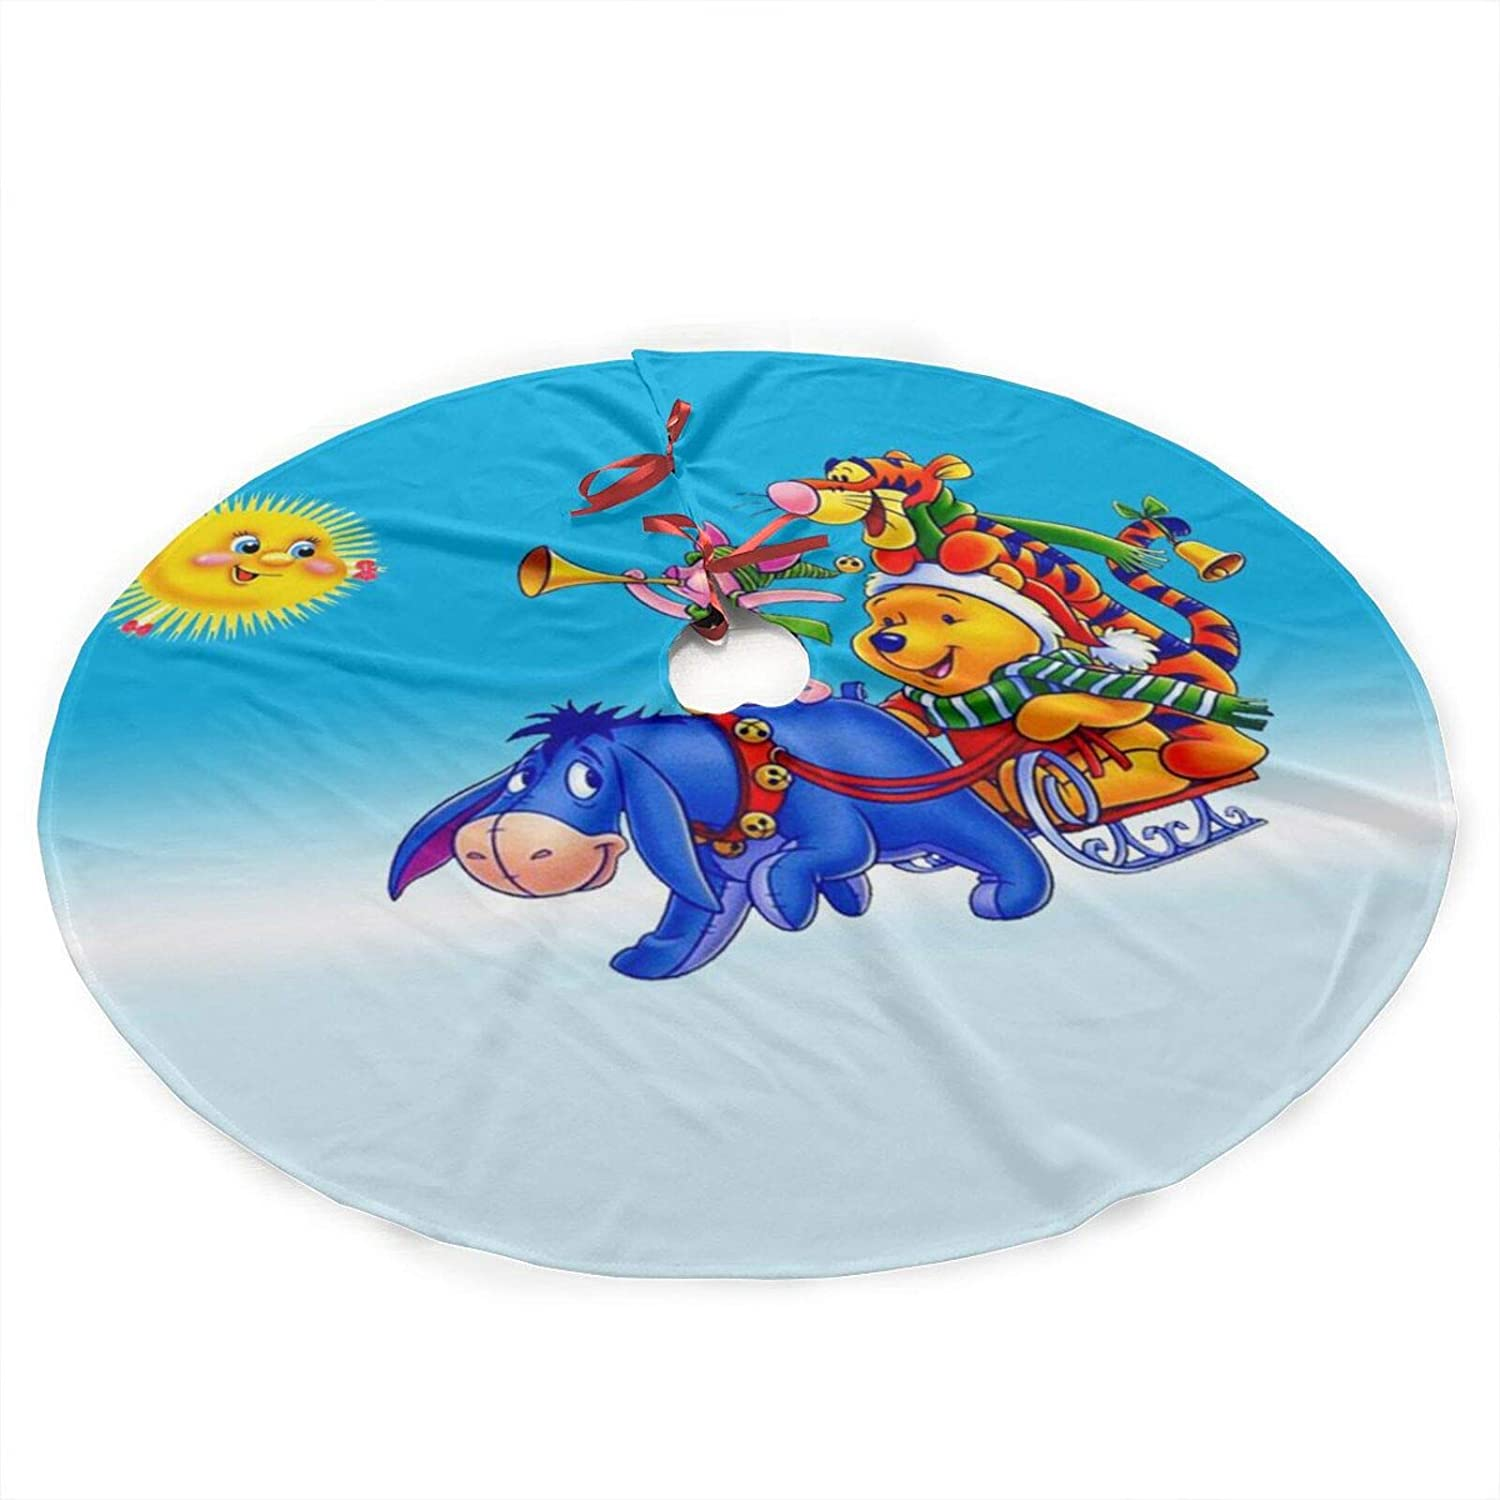 Dazhenfzd Tigger and Eeyore Plush Fabric Christmas Tree Skirt 36 Inch Holiday Home Decor ,Soft, Light and Good to Touch